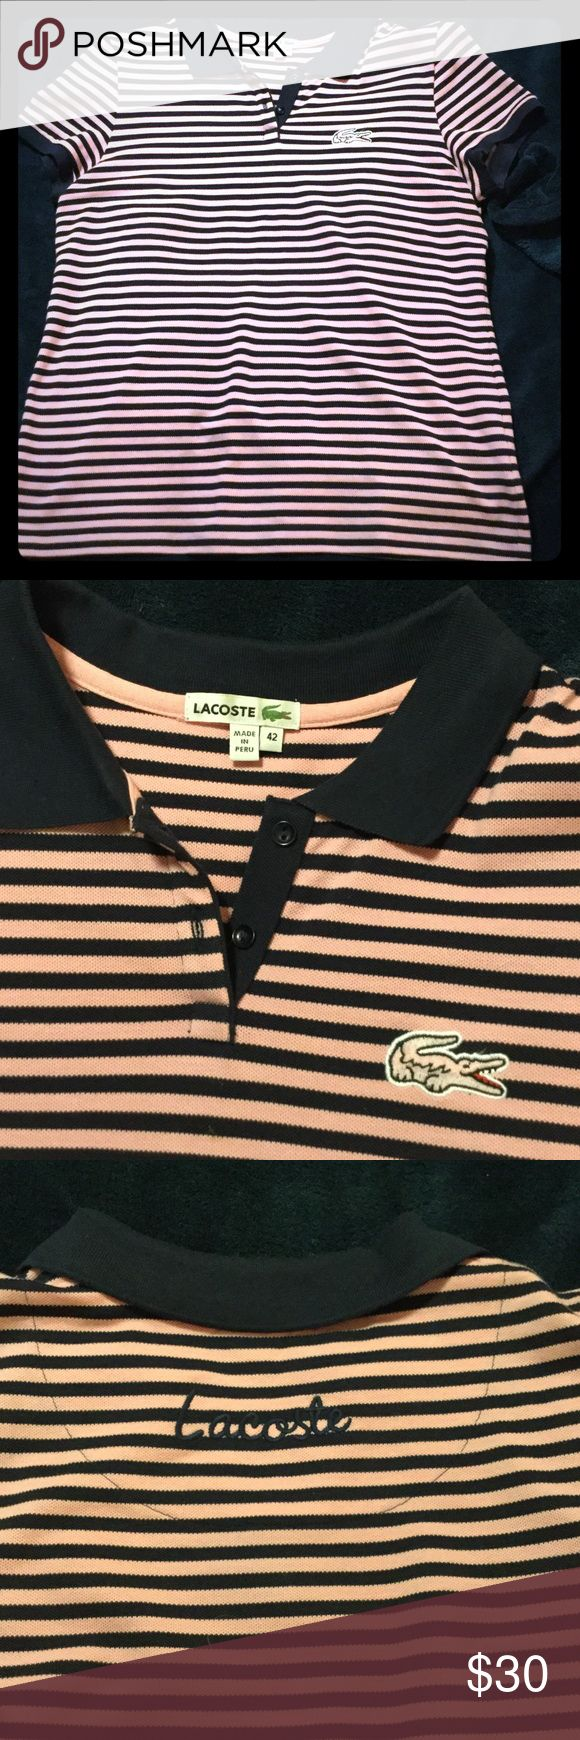 Lacoste polo shirt embroidered logos size 42 Pink and navy blue special edition Lacoste polo shirt with oversized alligator logo on front and embroidered logo on upper back. Size 42/L Like NEW Lacoste Tops Tees - Short Sleeve